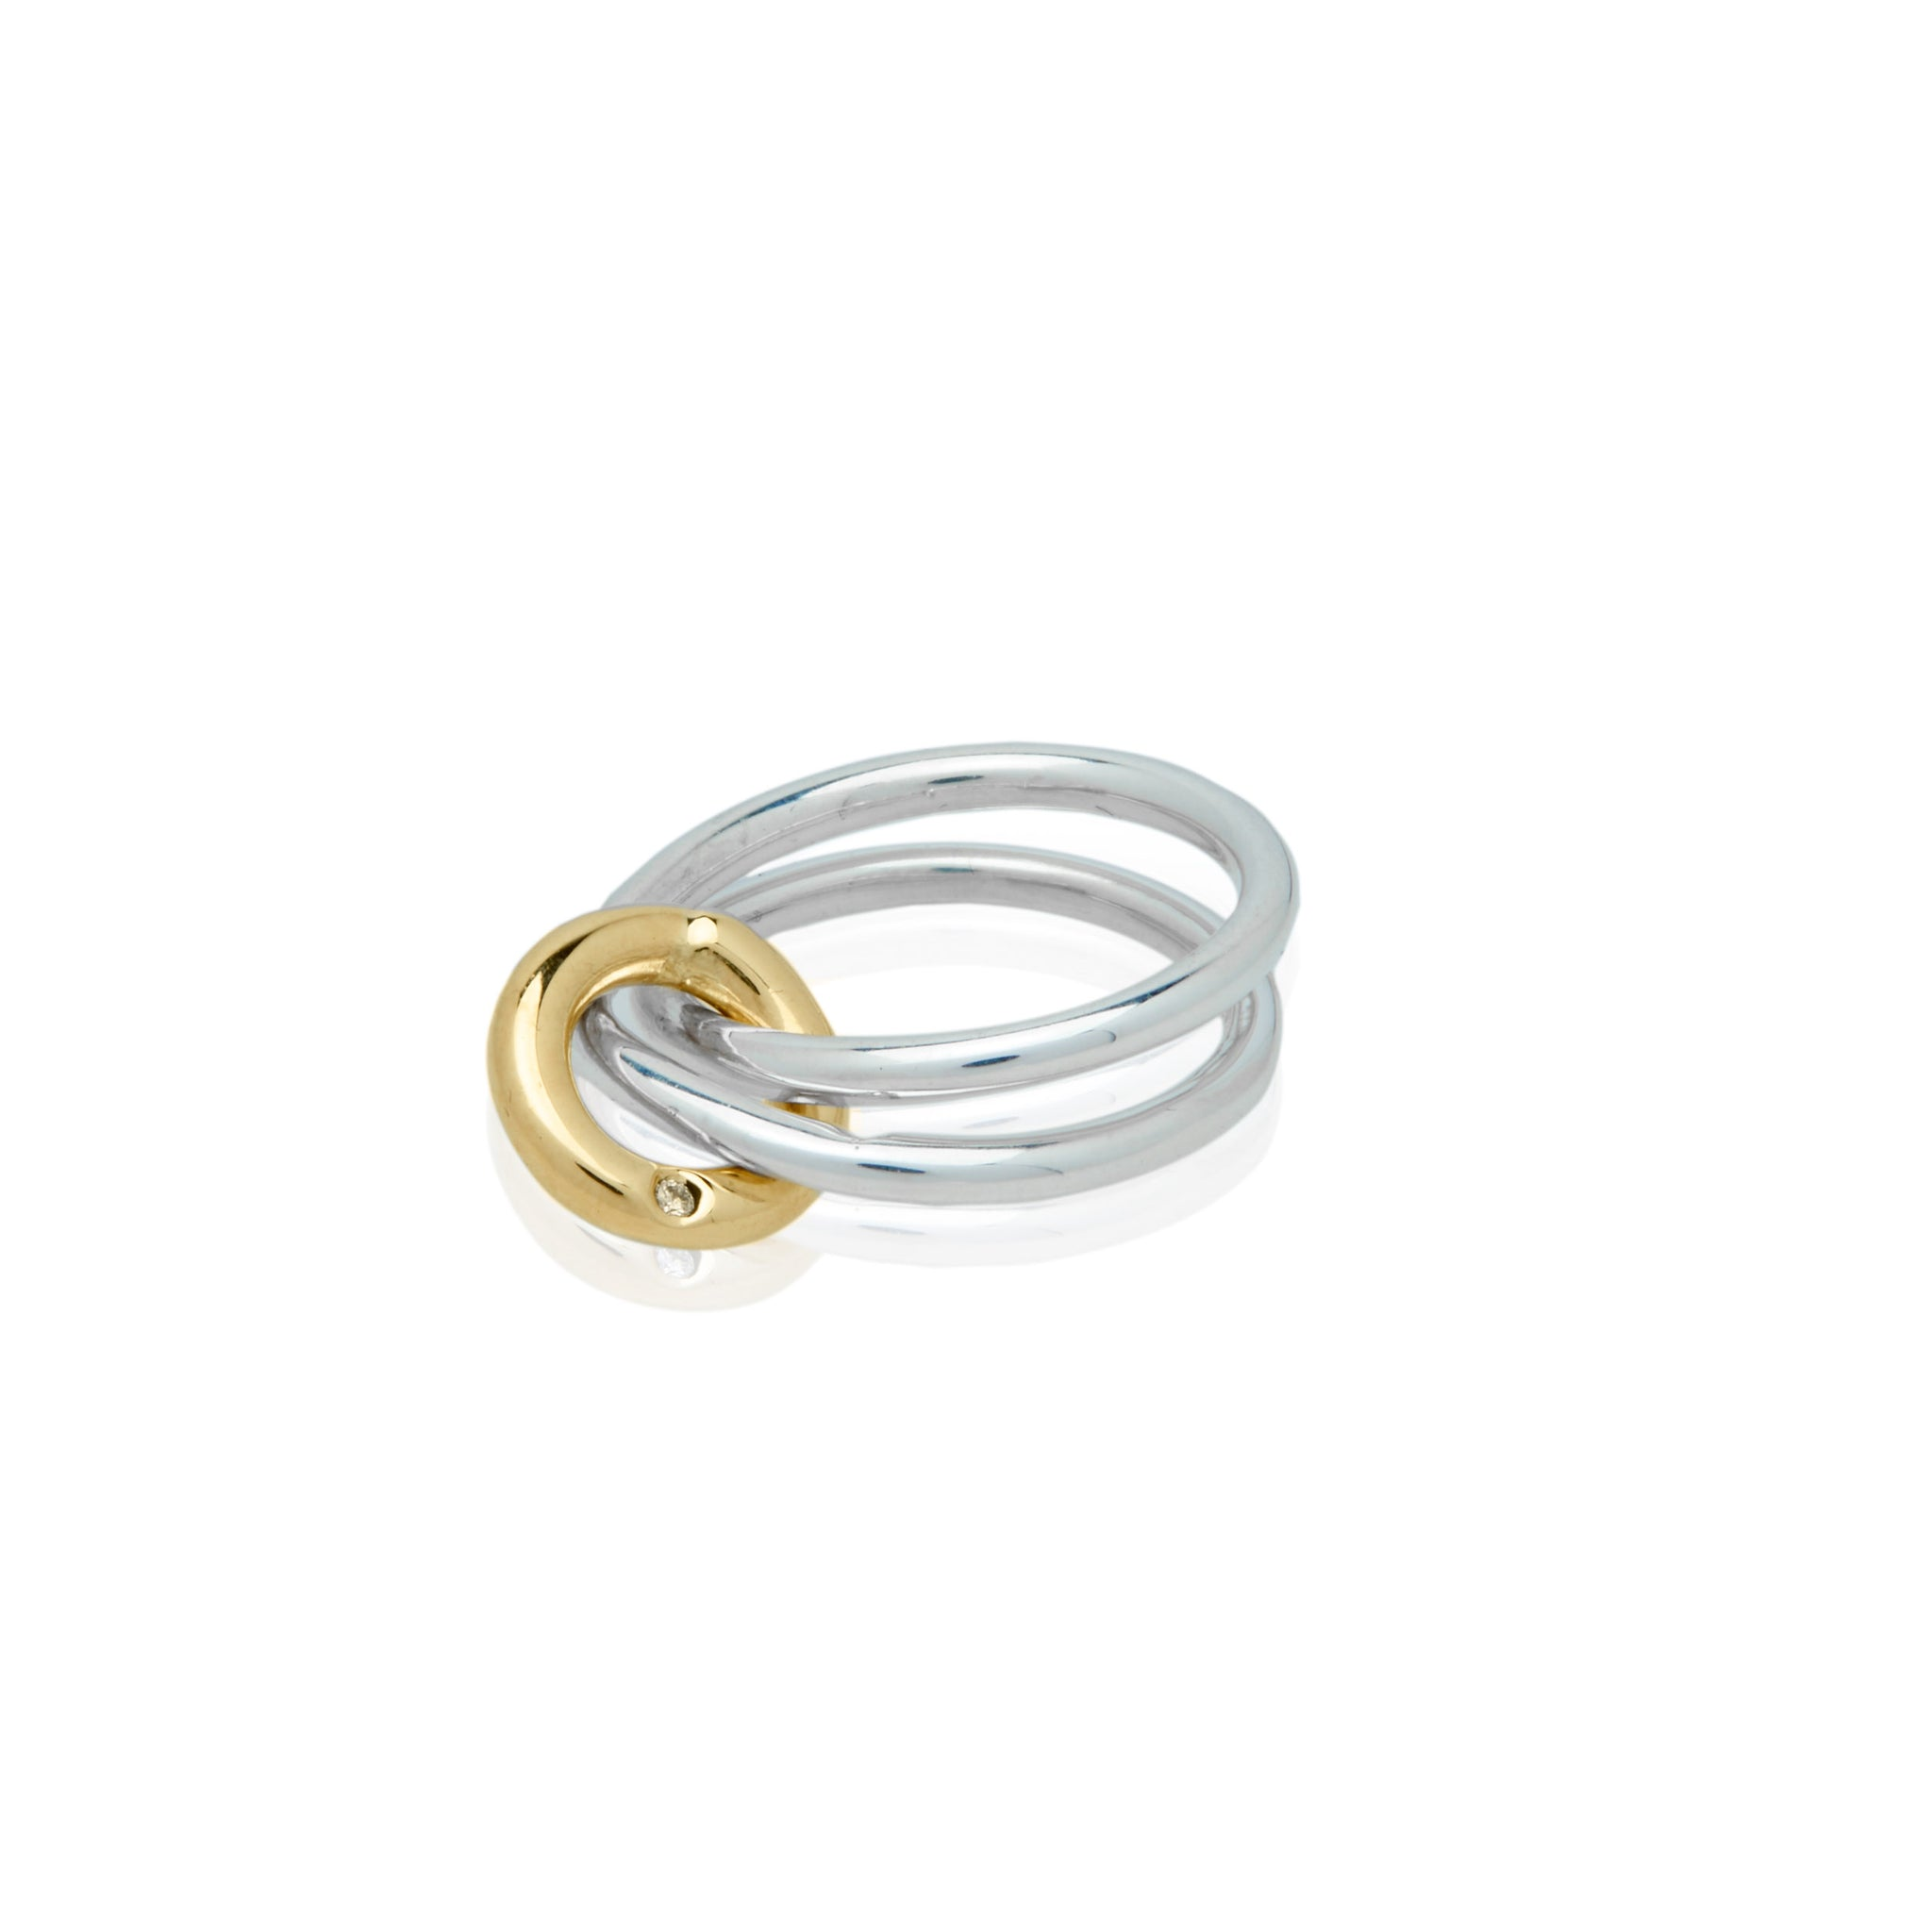 diamond loop ring fine jewelry custom design nyc cool girl fashion blogger style